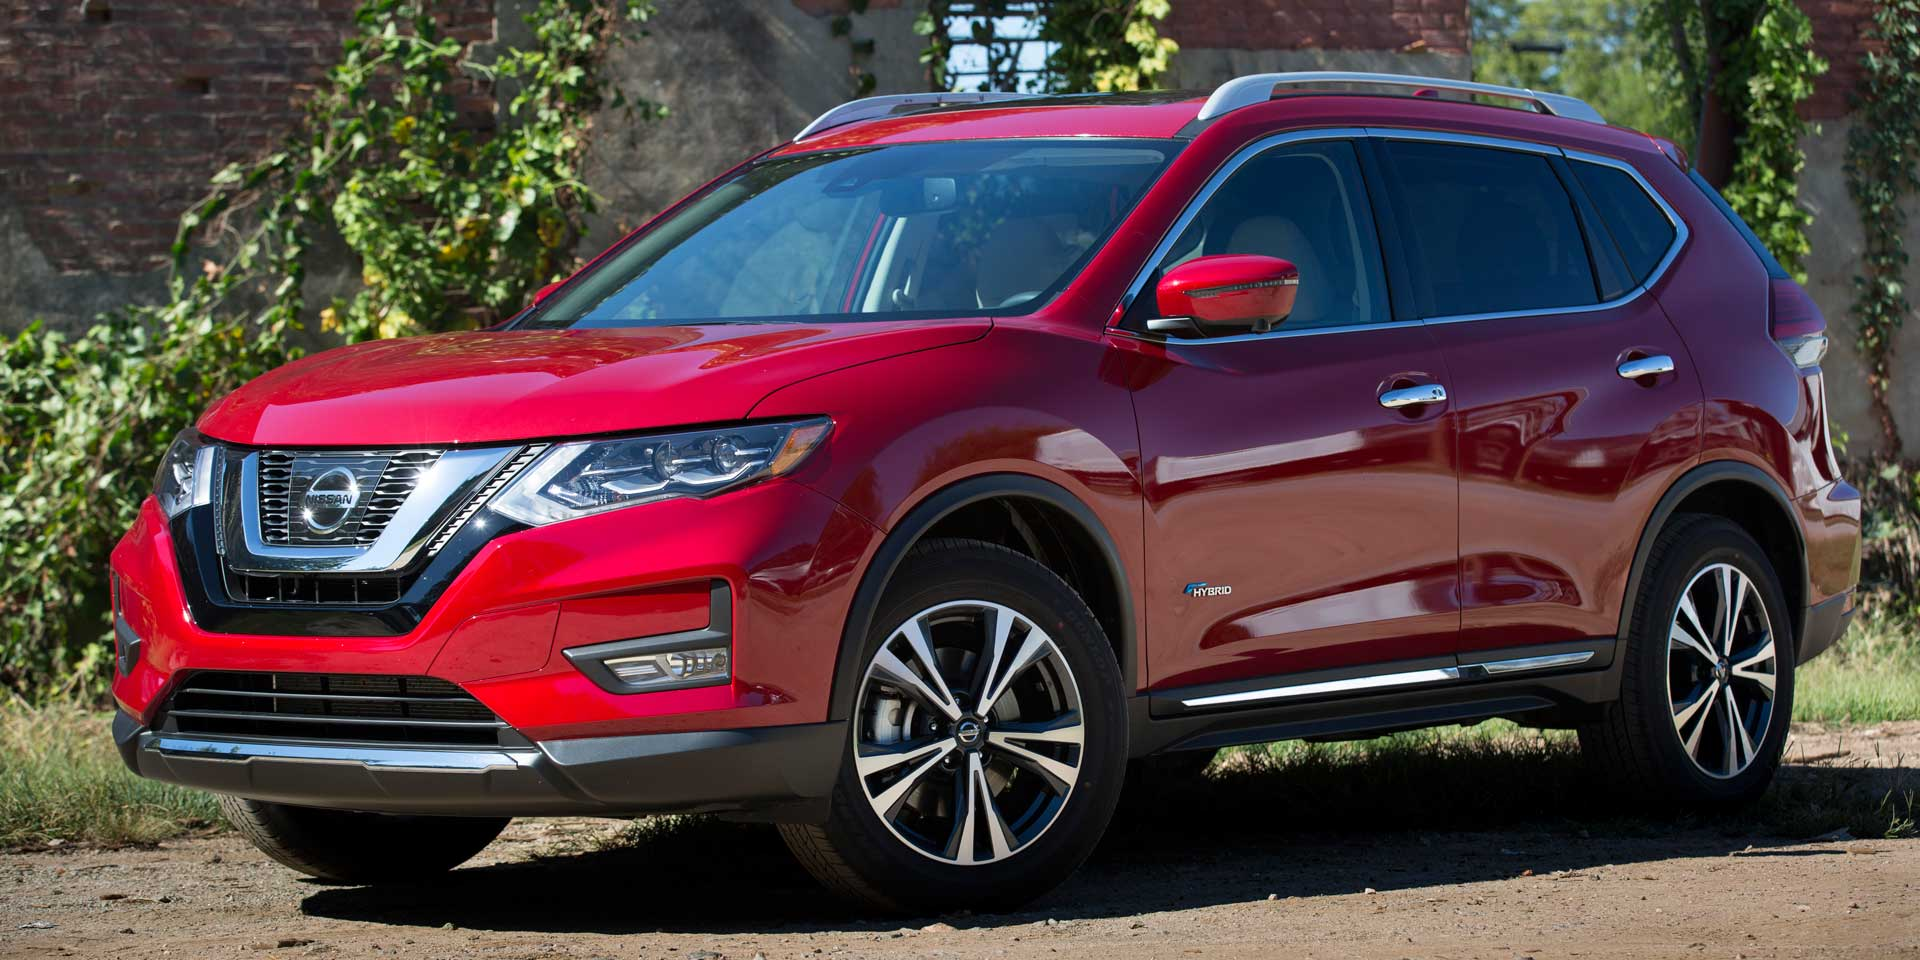 2017 Nissan Rogue Vehicles On Display Chicago Auto